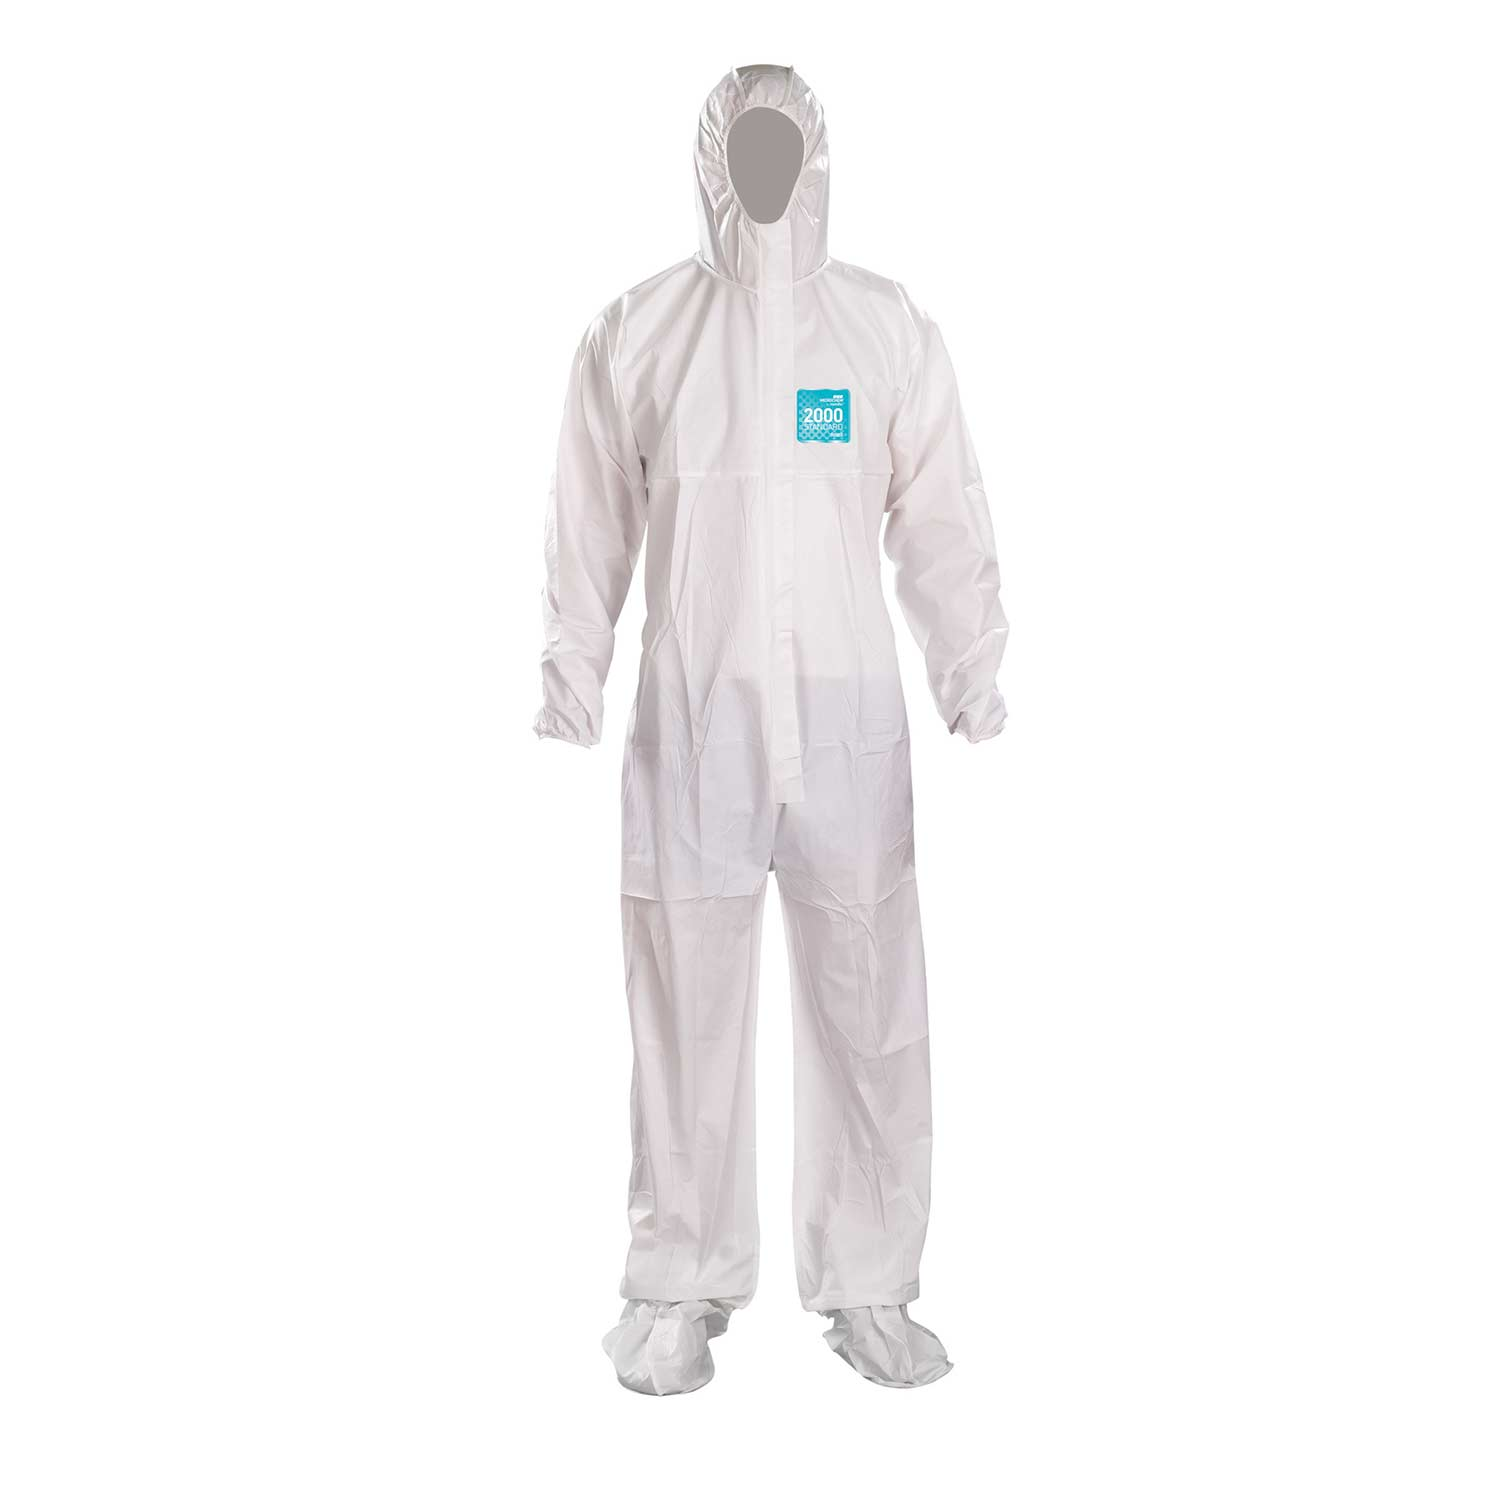 AlphaTec Ansell Healthcare Microchem 2000 Coveralls (Case of